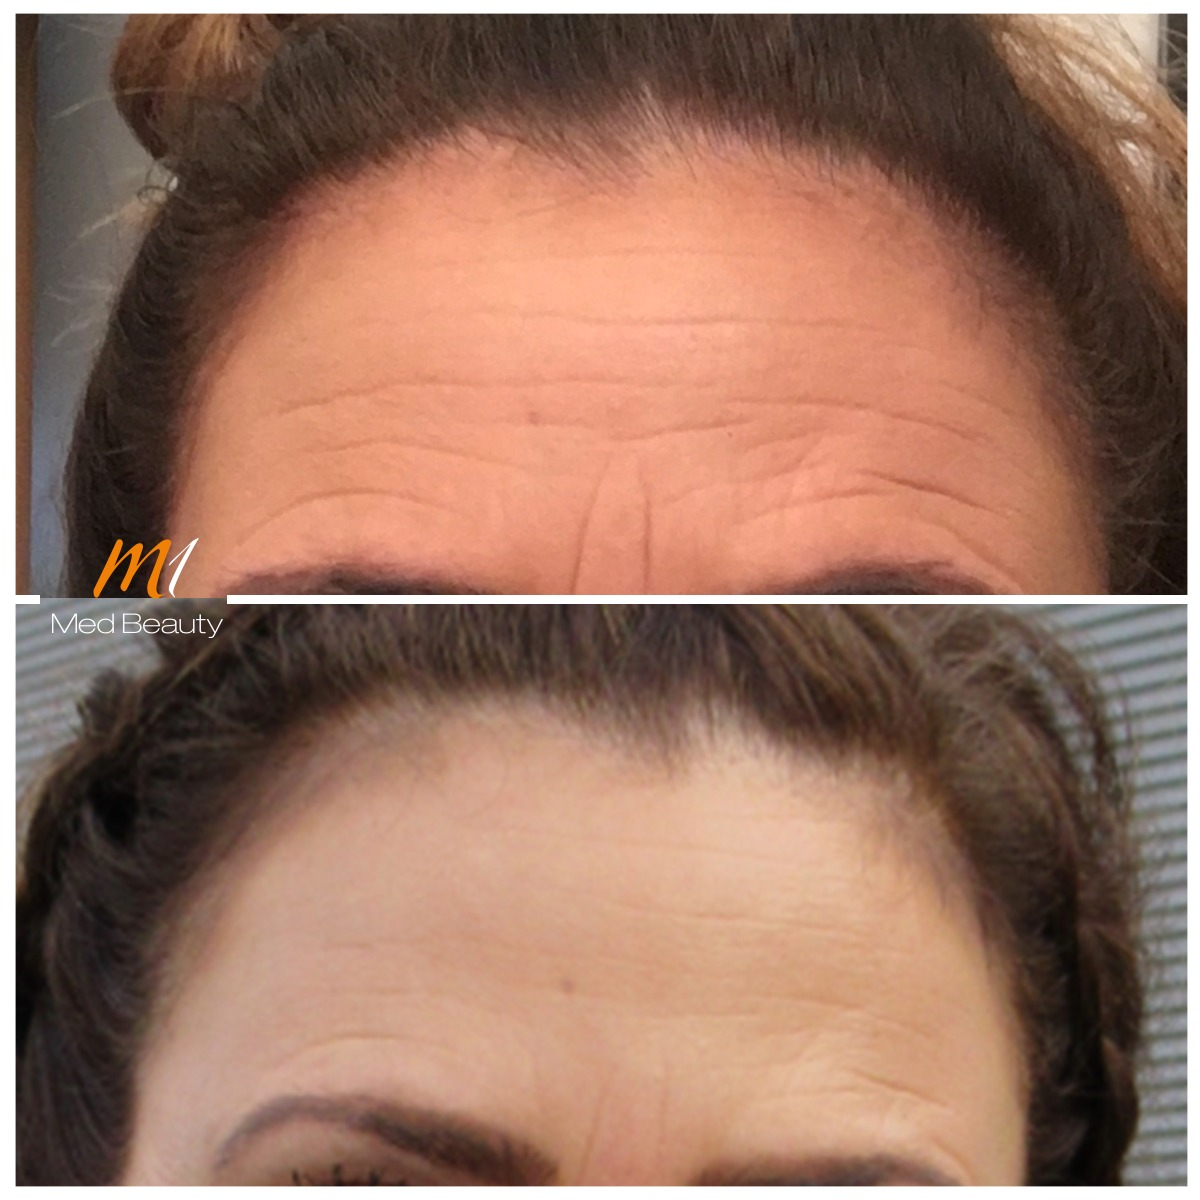 Forehead lines wrinkle treatment at M1 Med Beauty